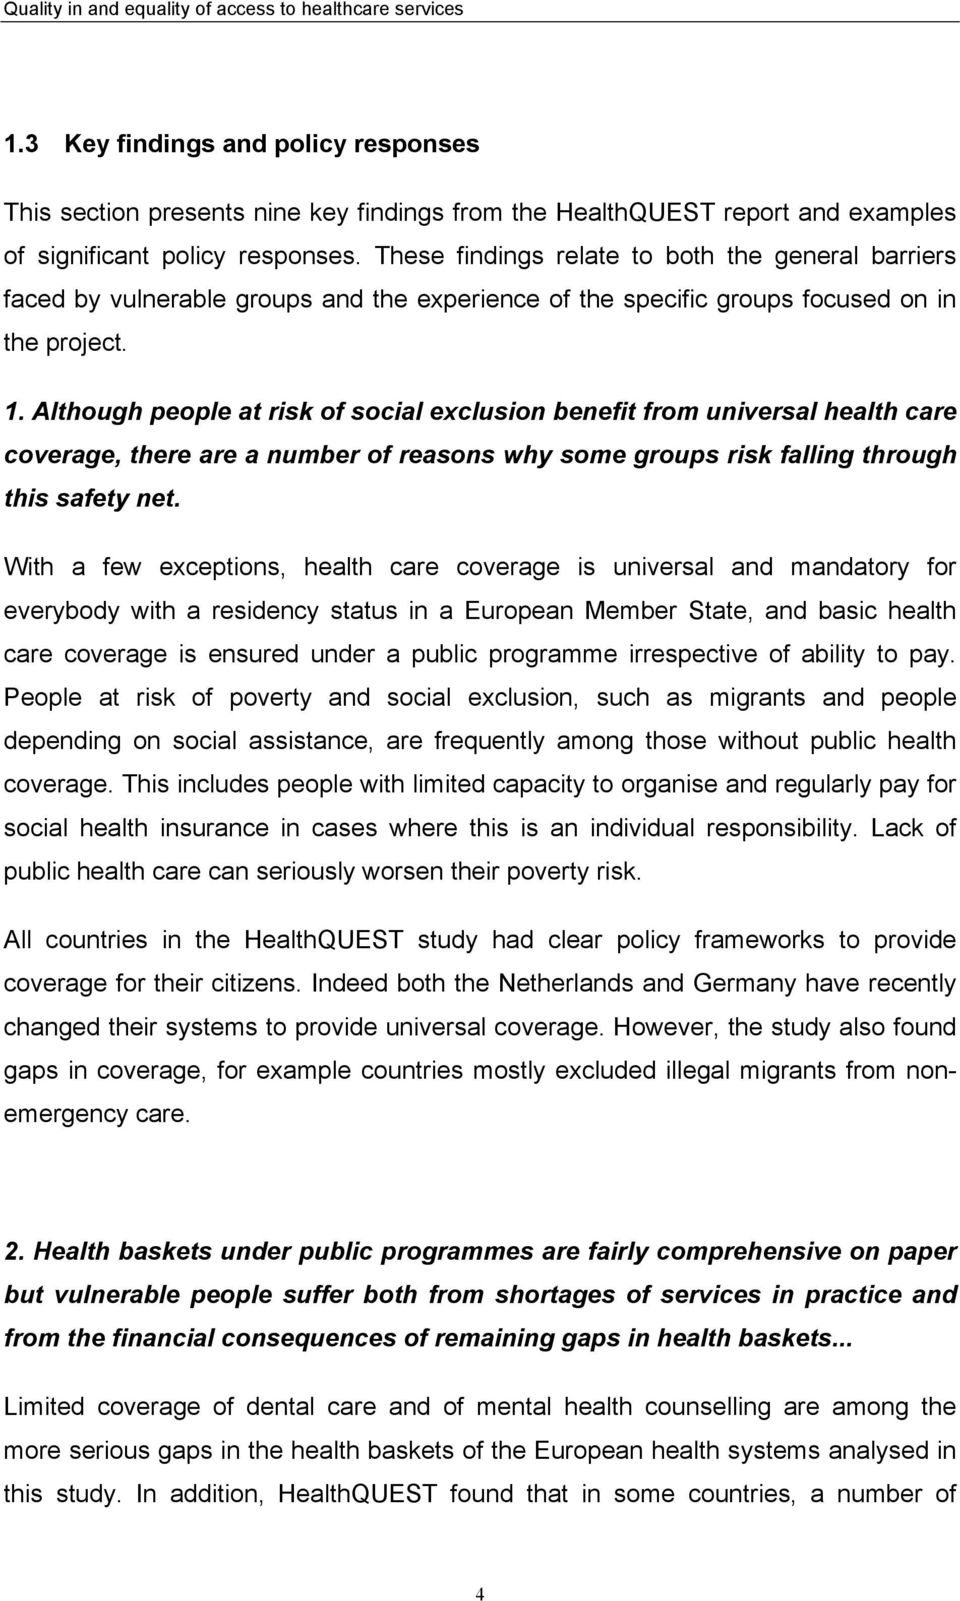 Although people at risk of social exclusion benefit from universal health care coverage, there are a number of reasons why some groups risk falling through this safety net.